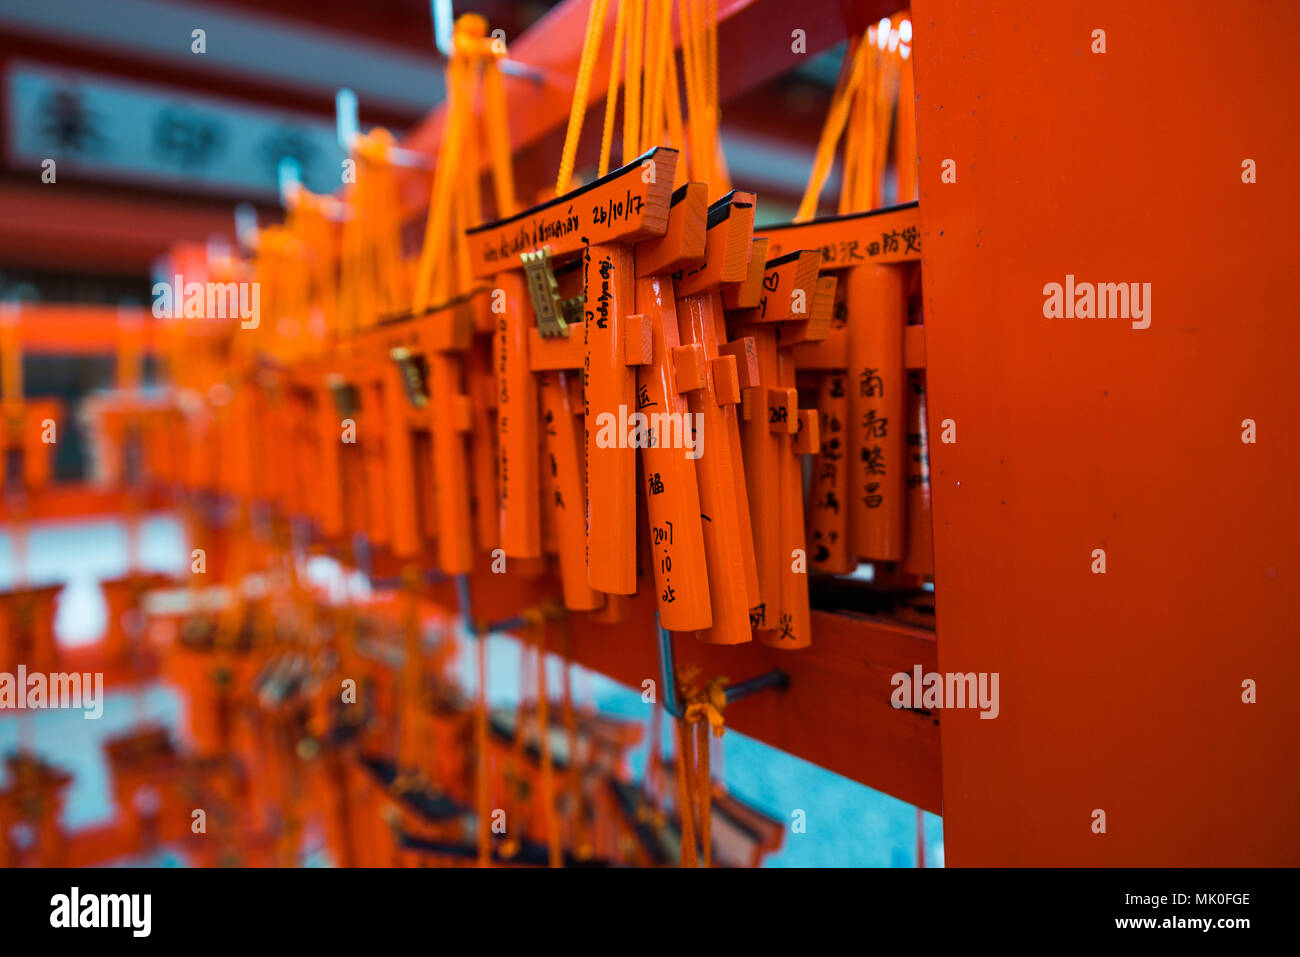 Fushimi Inari shrine in Kyoto, Japan - Stock Image